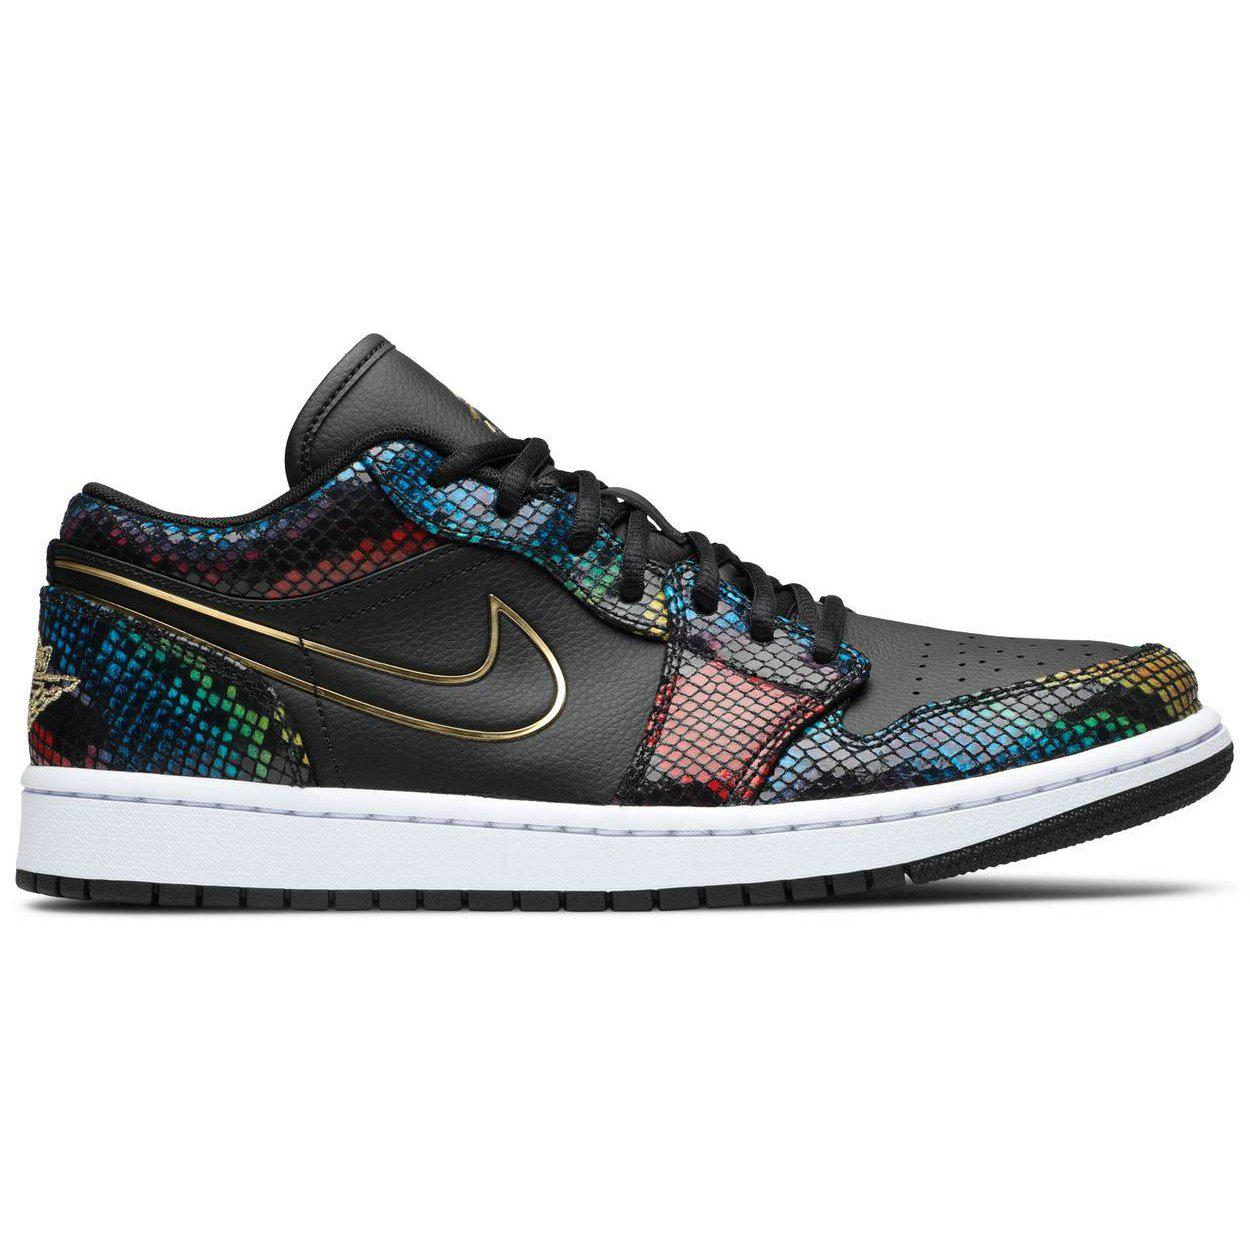 Nike Wmns Air Jordan 1 Low 'Multi Snakeskin' | Waves Never Die | Nike | Sneakers